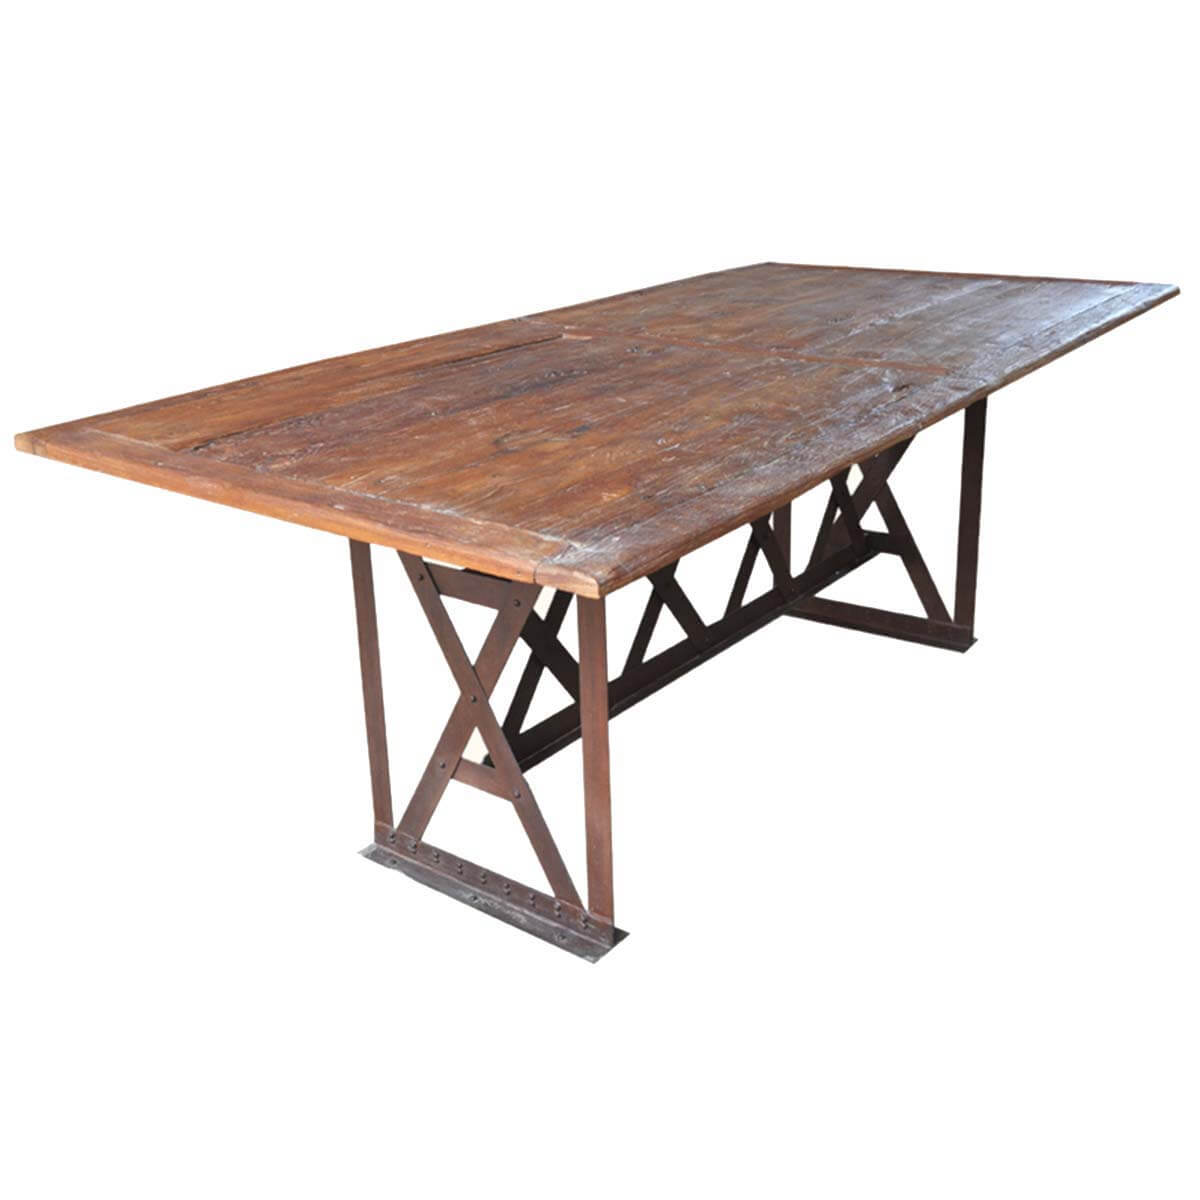 Rustic Industrial 5 X Wrought Iron Teak Patio Dining Table